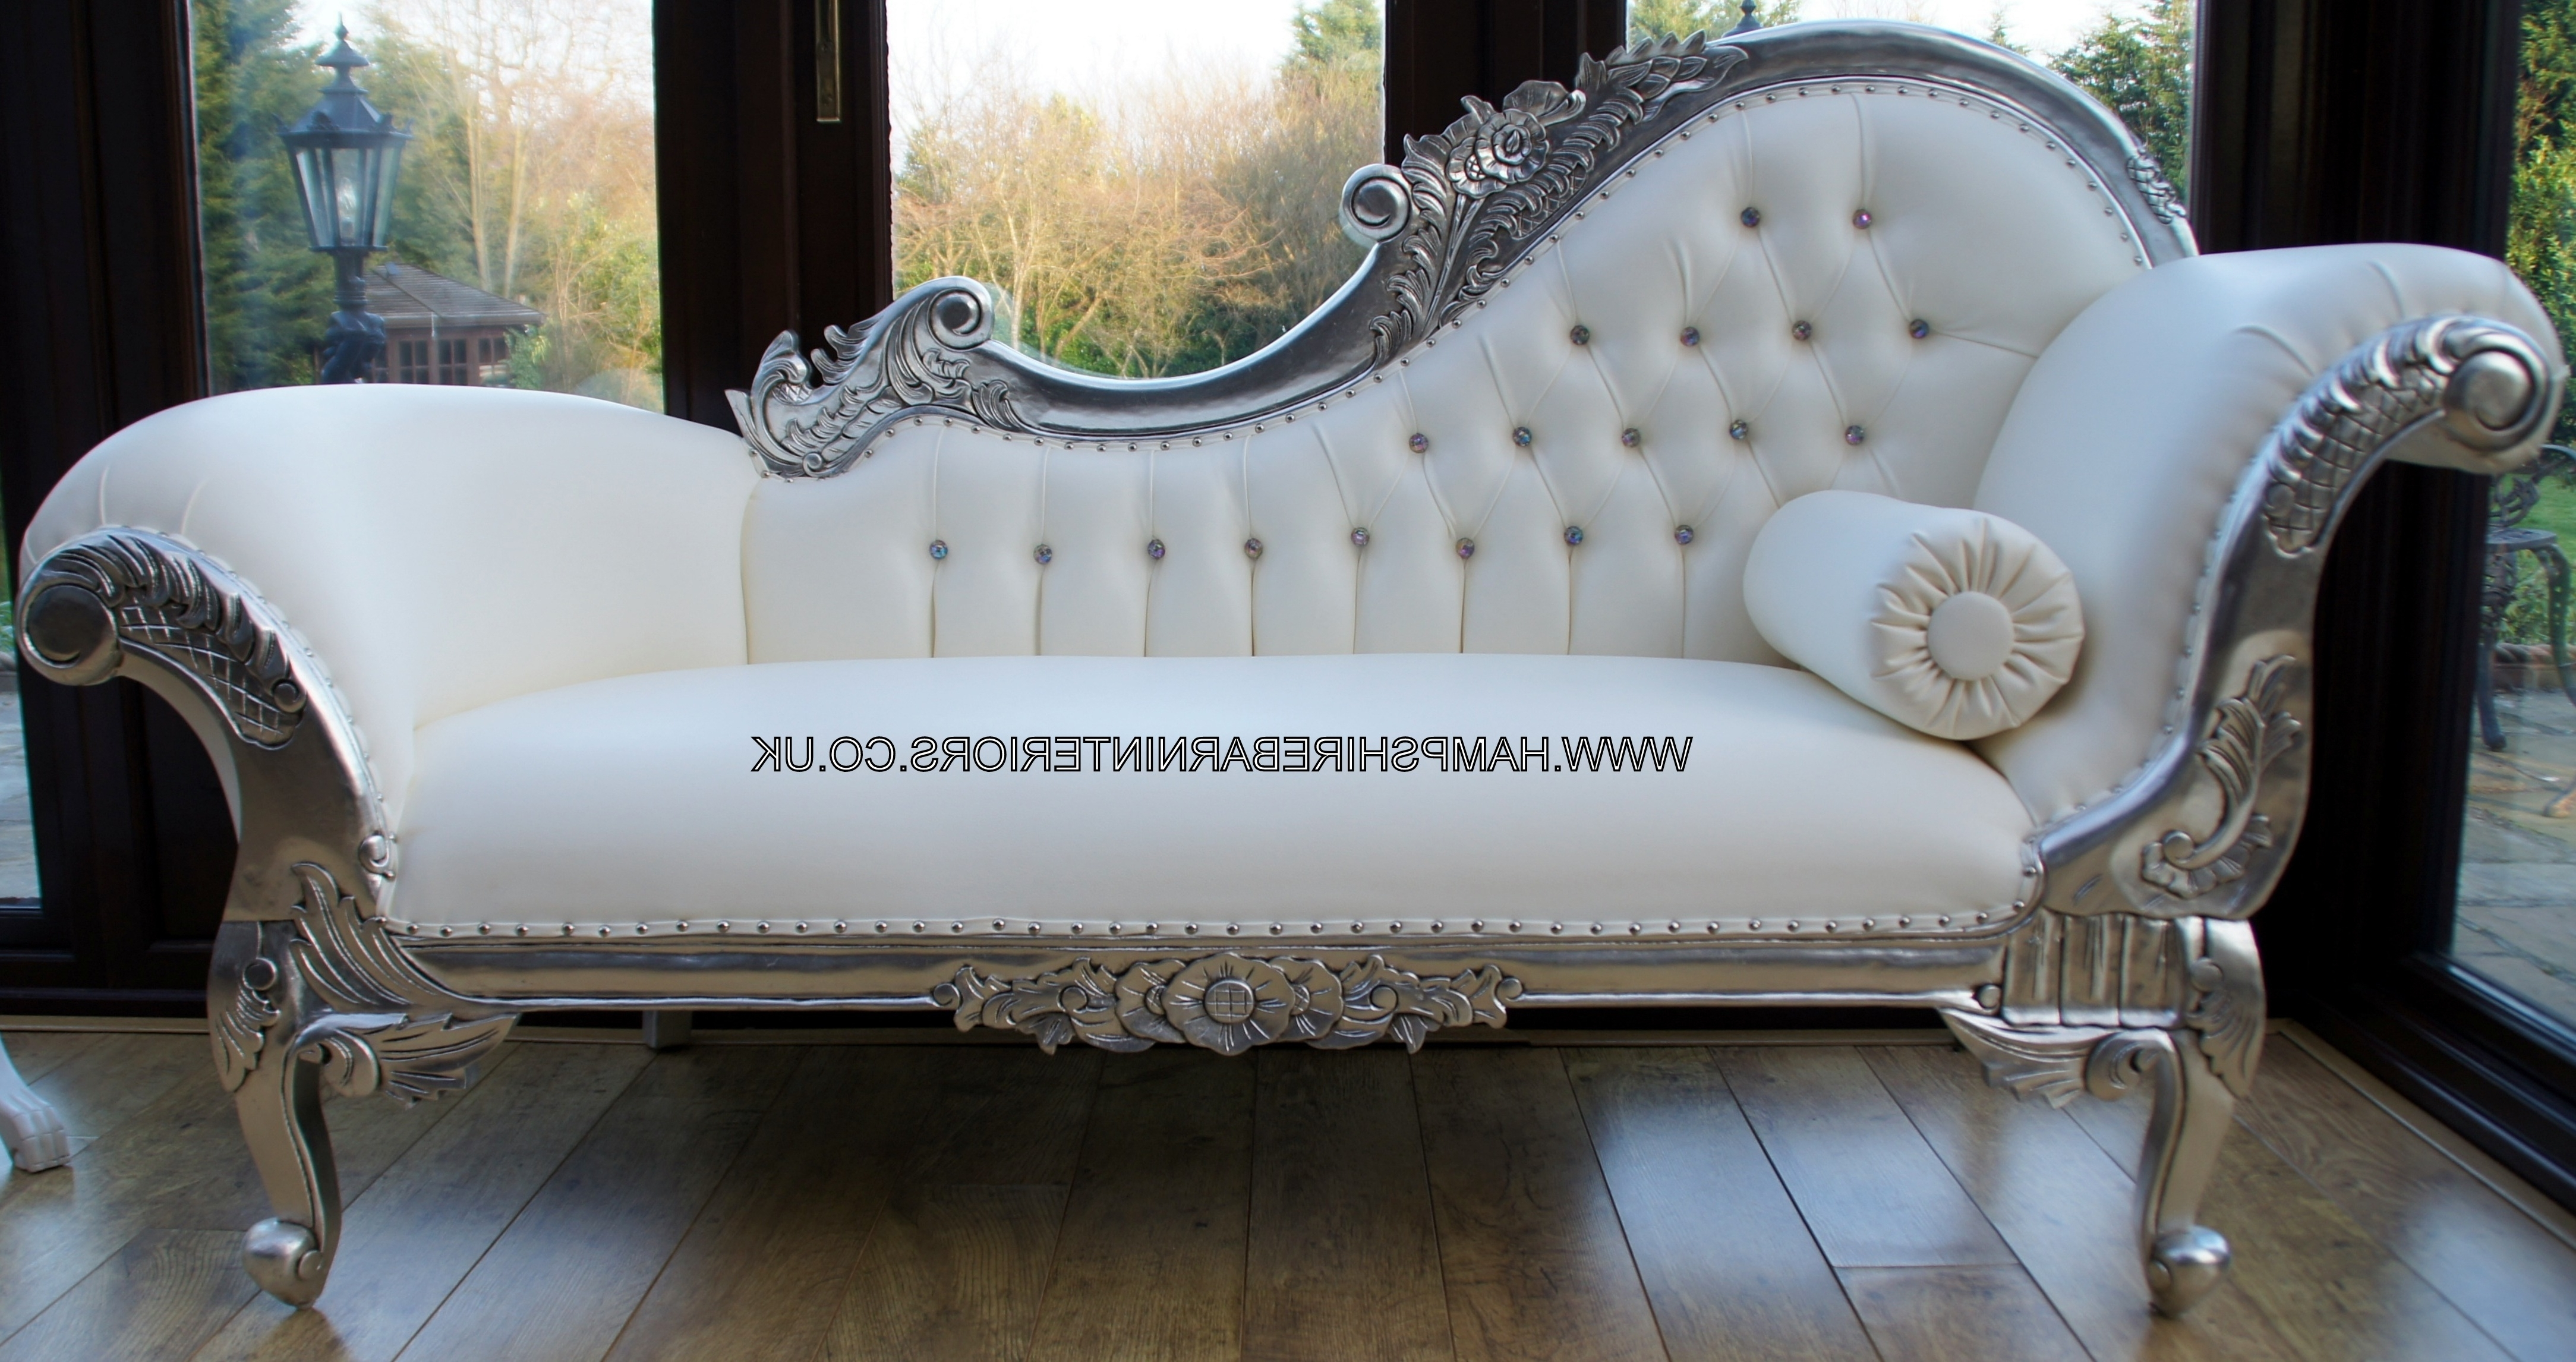 Chaise Lounge Chair White Leather • Lounge Chairs Ideas Pertaining To Best And Newest White Leather Chaises (View 5 of 15)